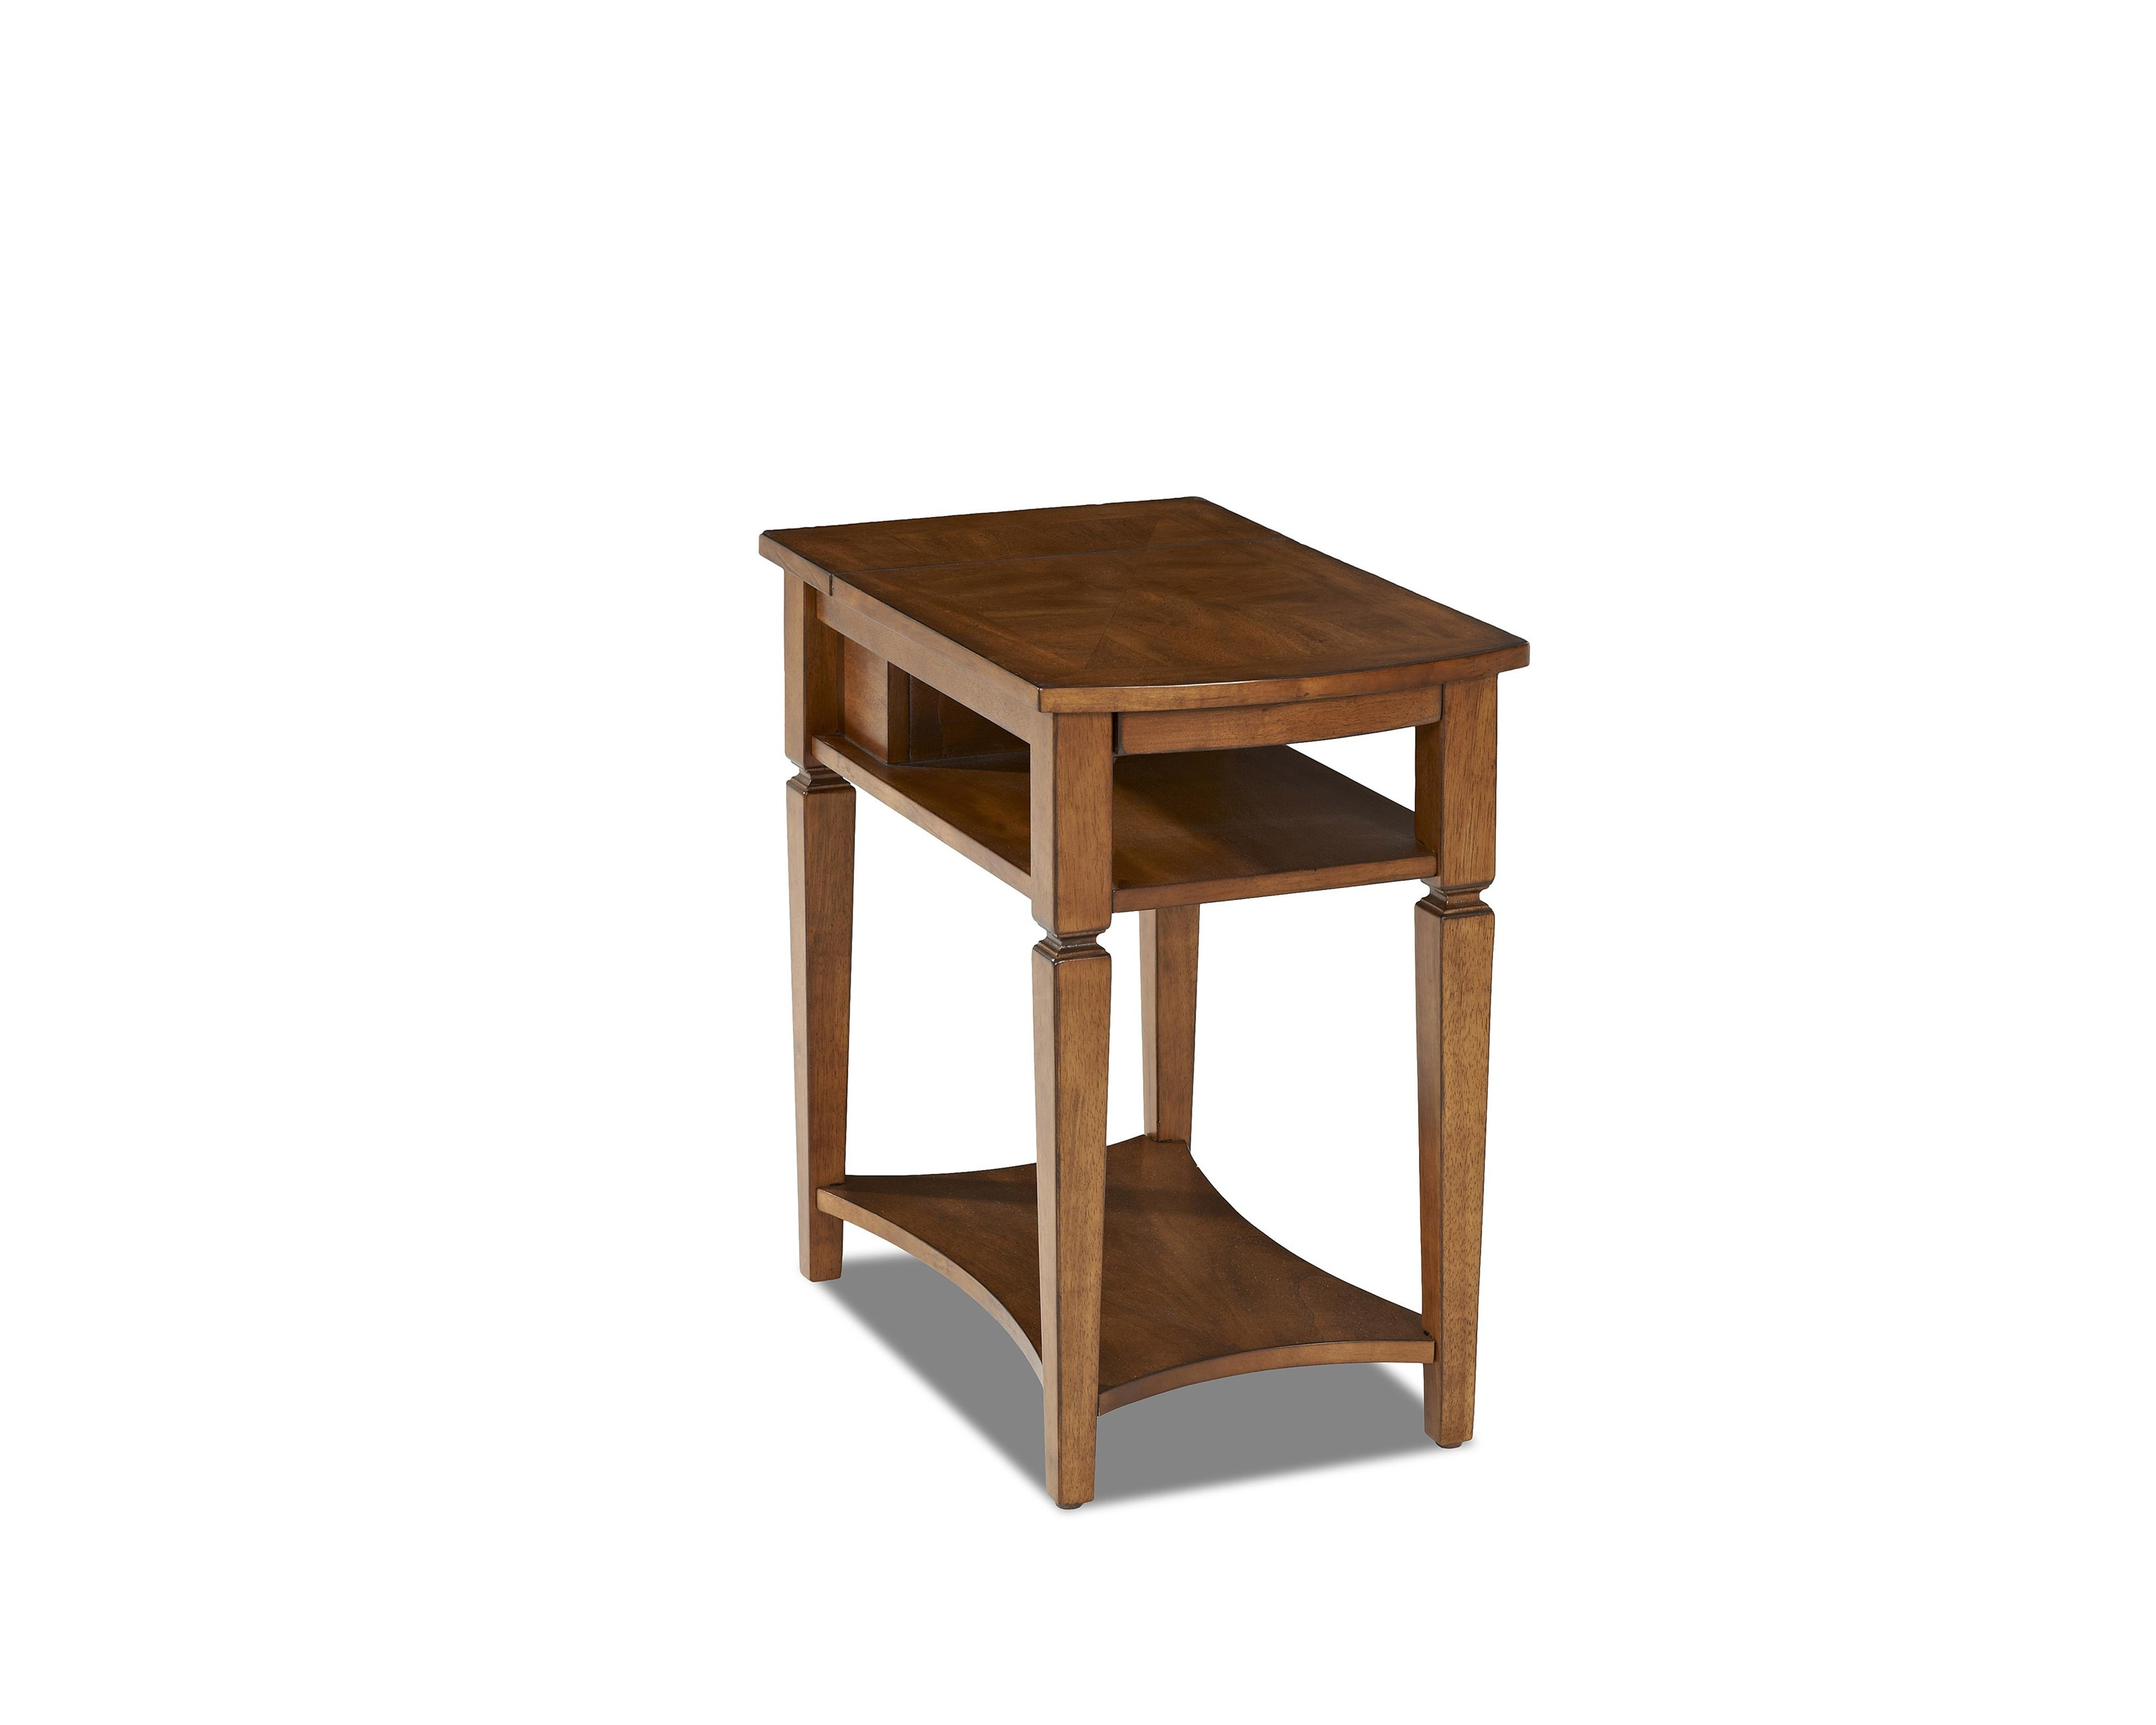 Elliston Place Glendale Glendale Chairside Table with Power - Item Number: 449514946